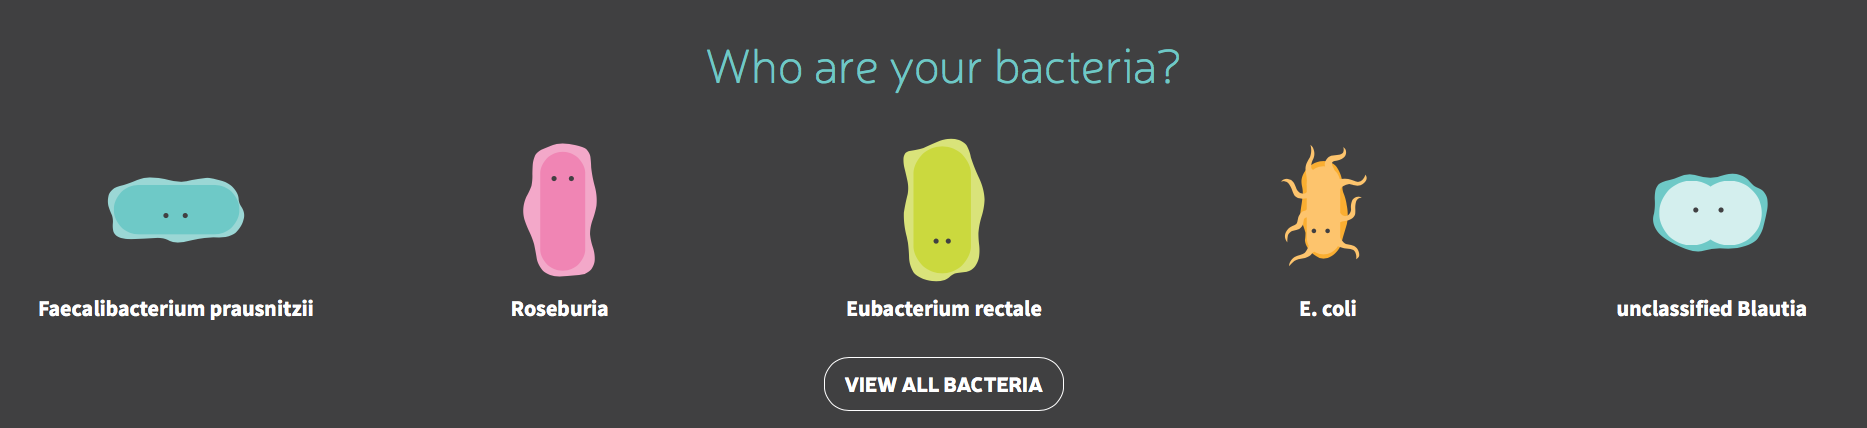 Who are your bacteria?